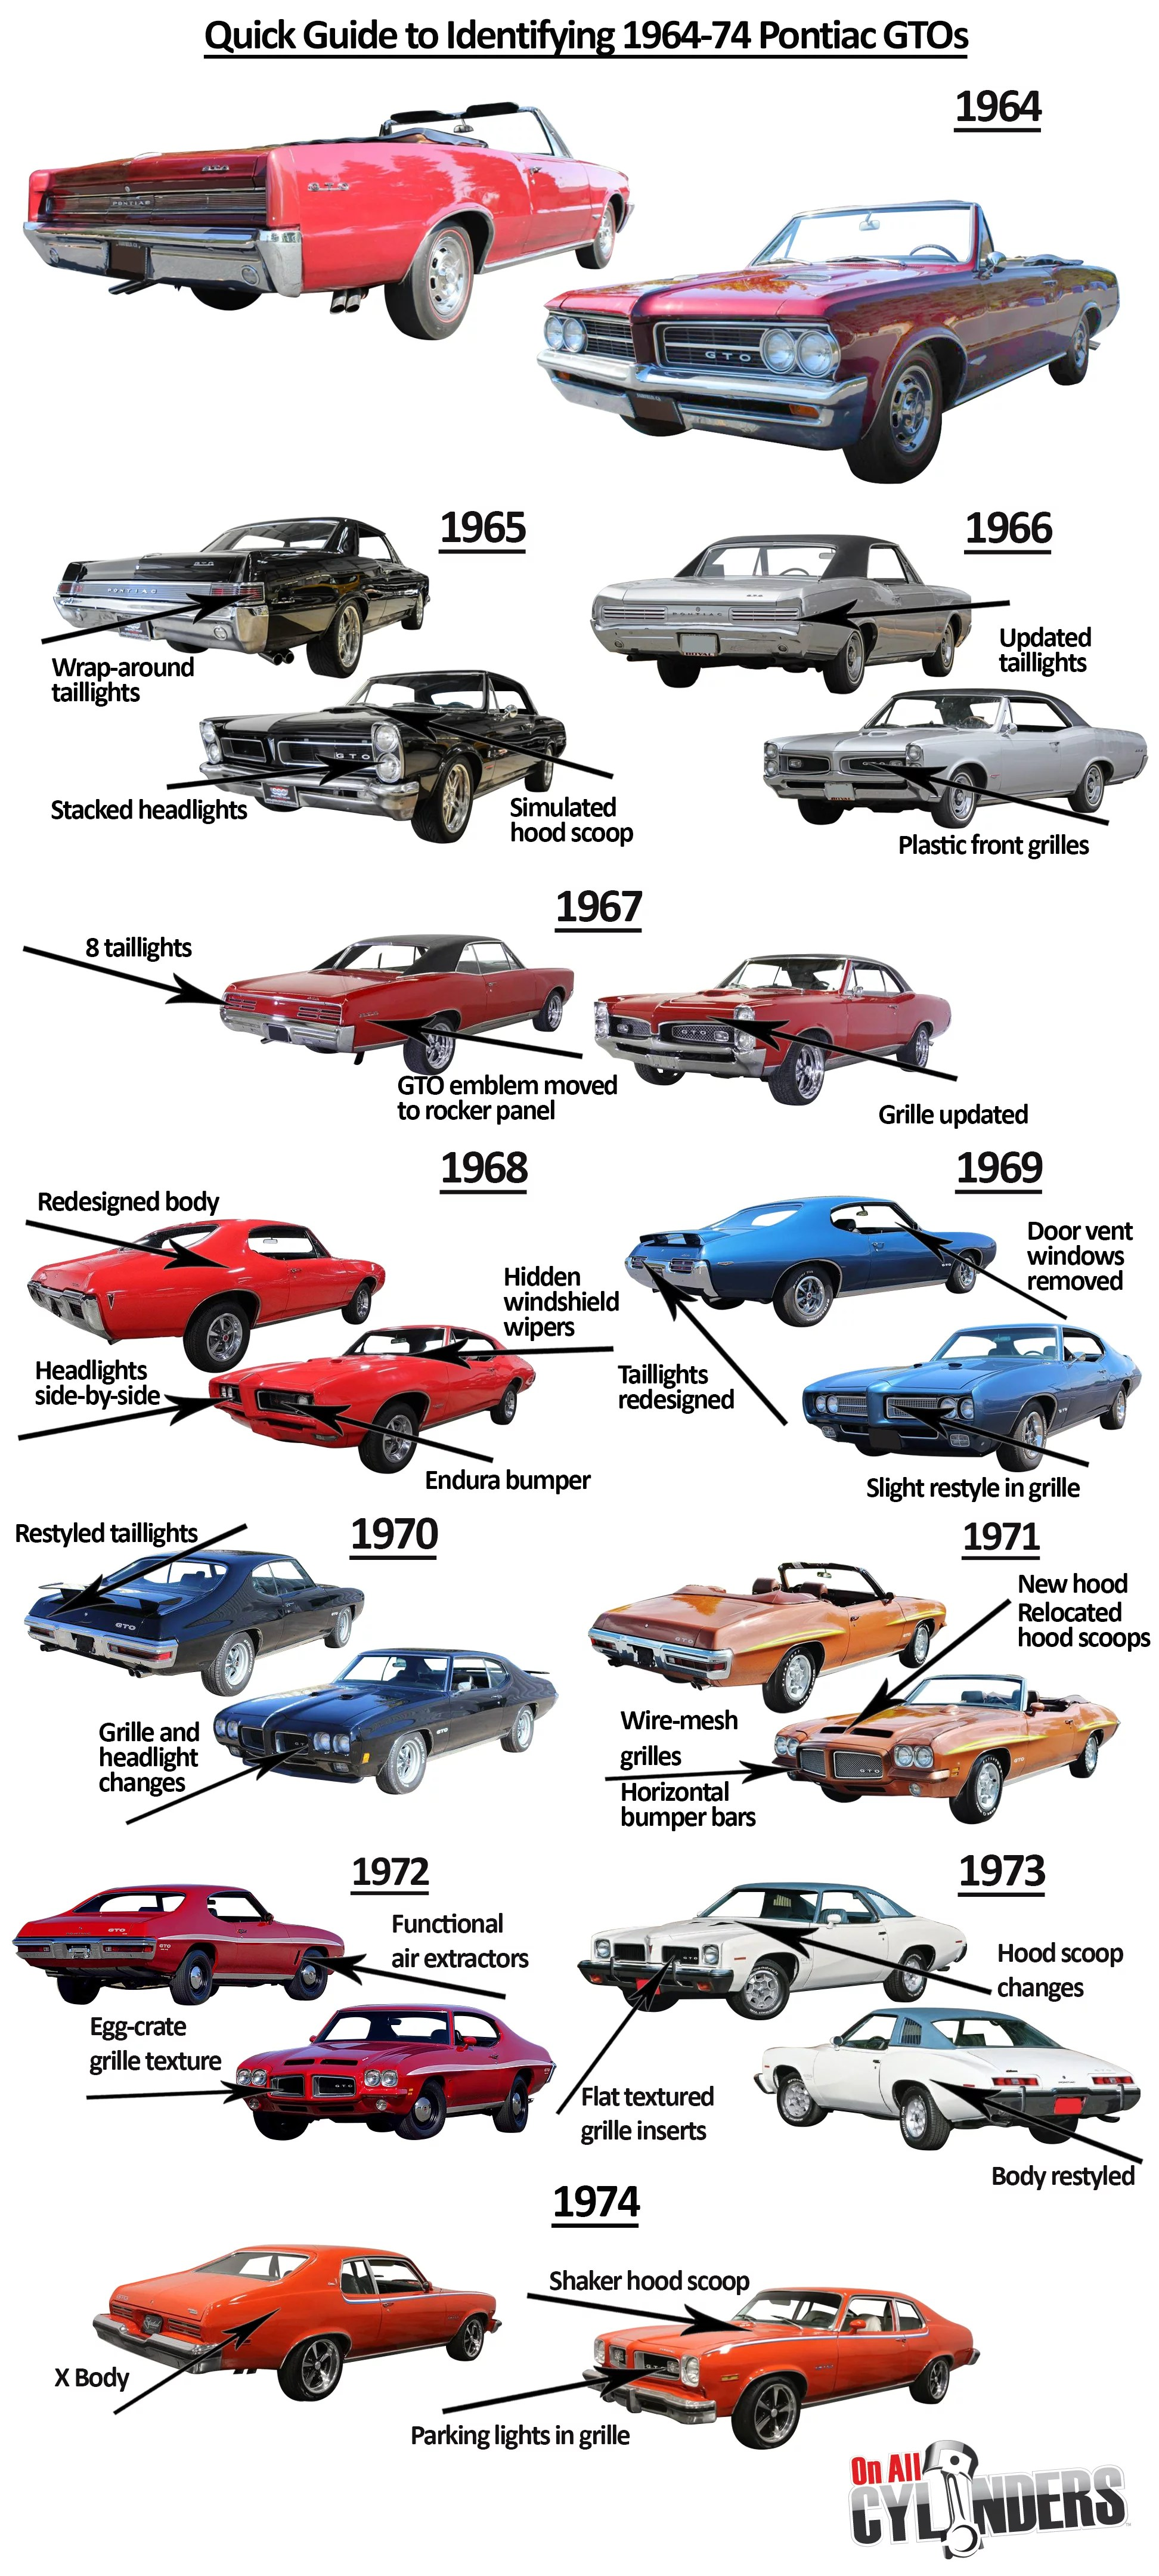 1970 Grand Prix Wiring Diagram Ride Guides A Quick Guide To Identifying Early Model